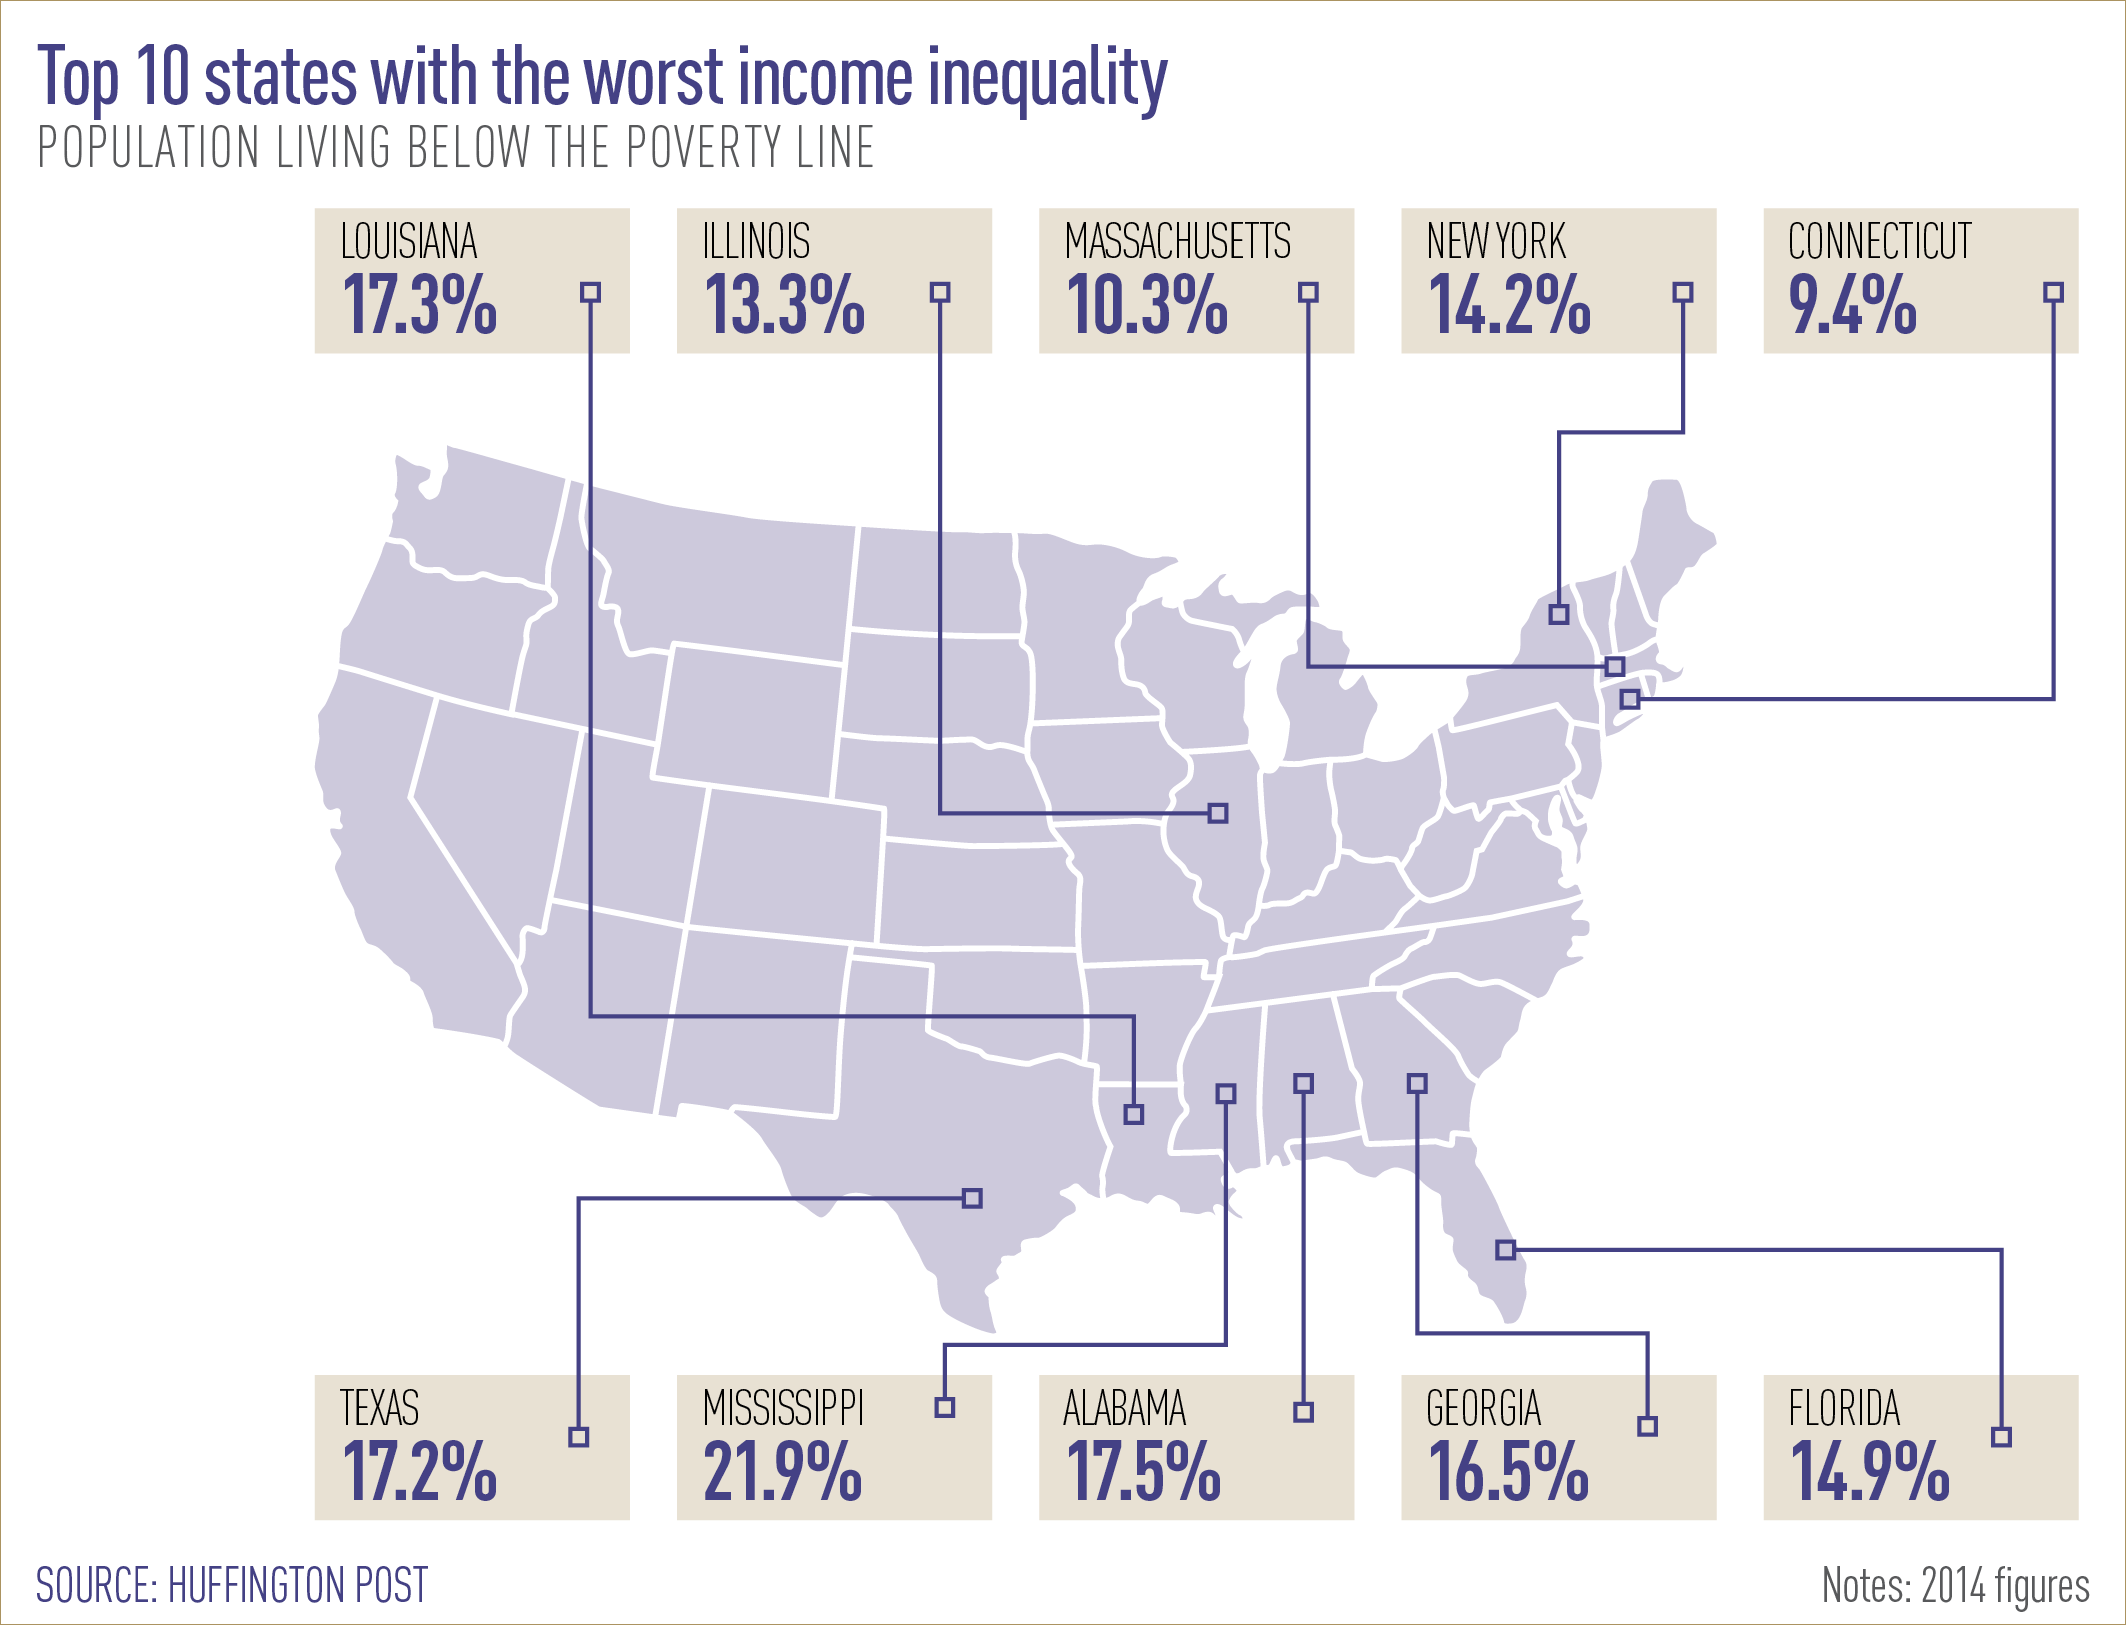 Top 10 states with the worst income inequality